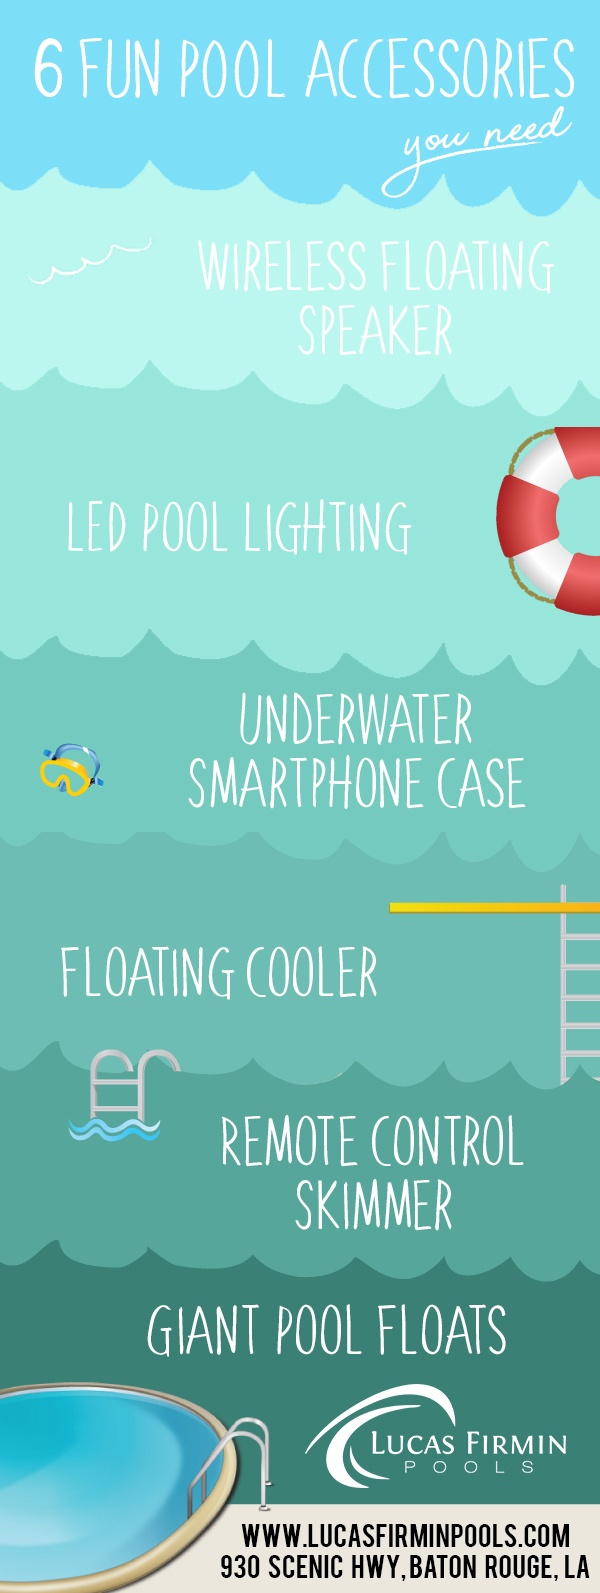 In-Ground Pool Builder in Baton Rouge: 6 Pool Accessories You Need